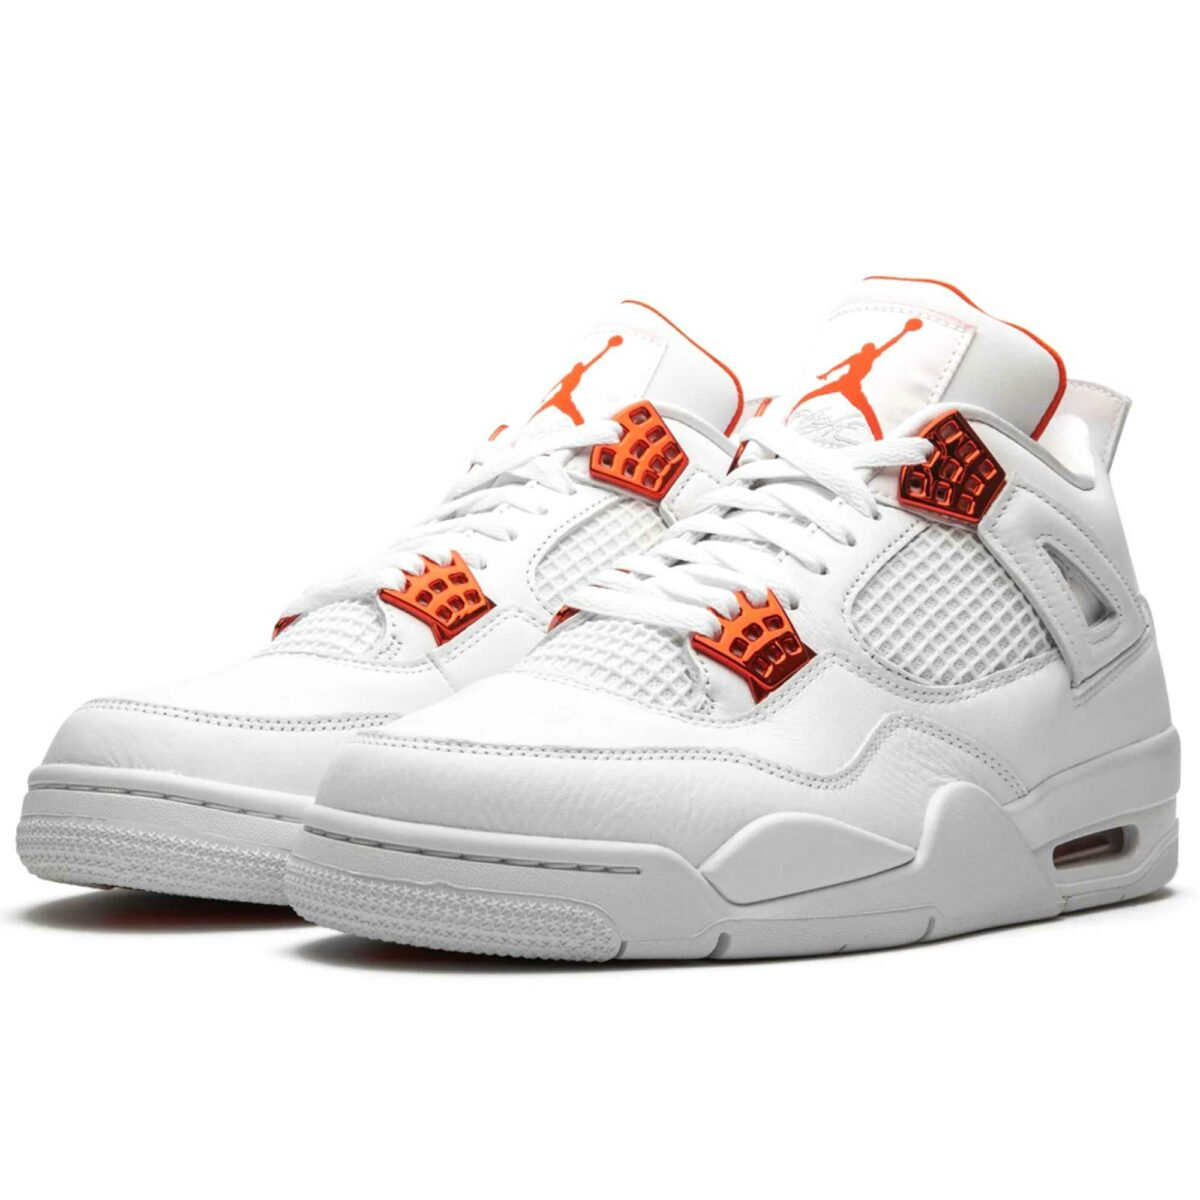 nike air Jordan 4 retro metallic pack orange CT8527_118 купить